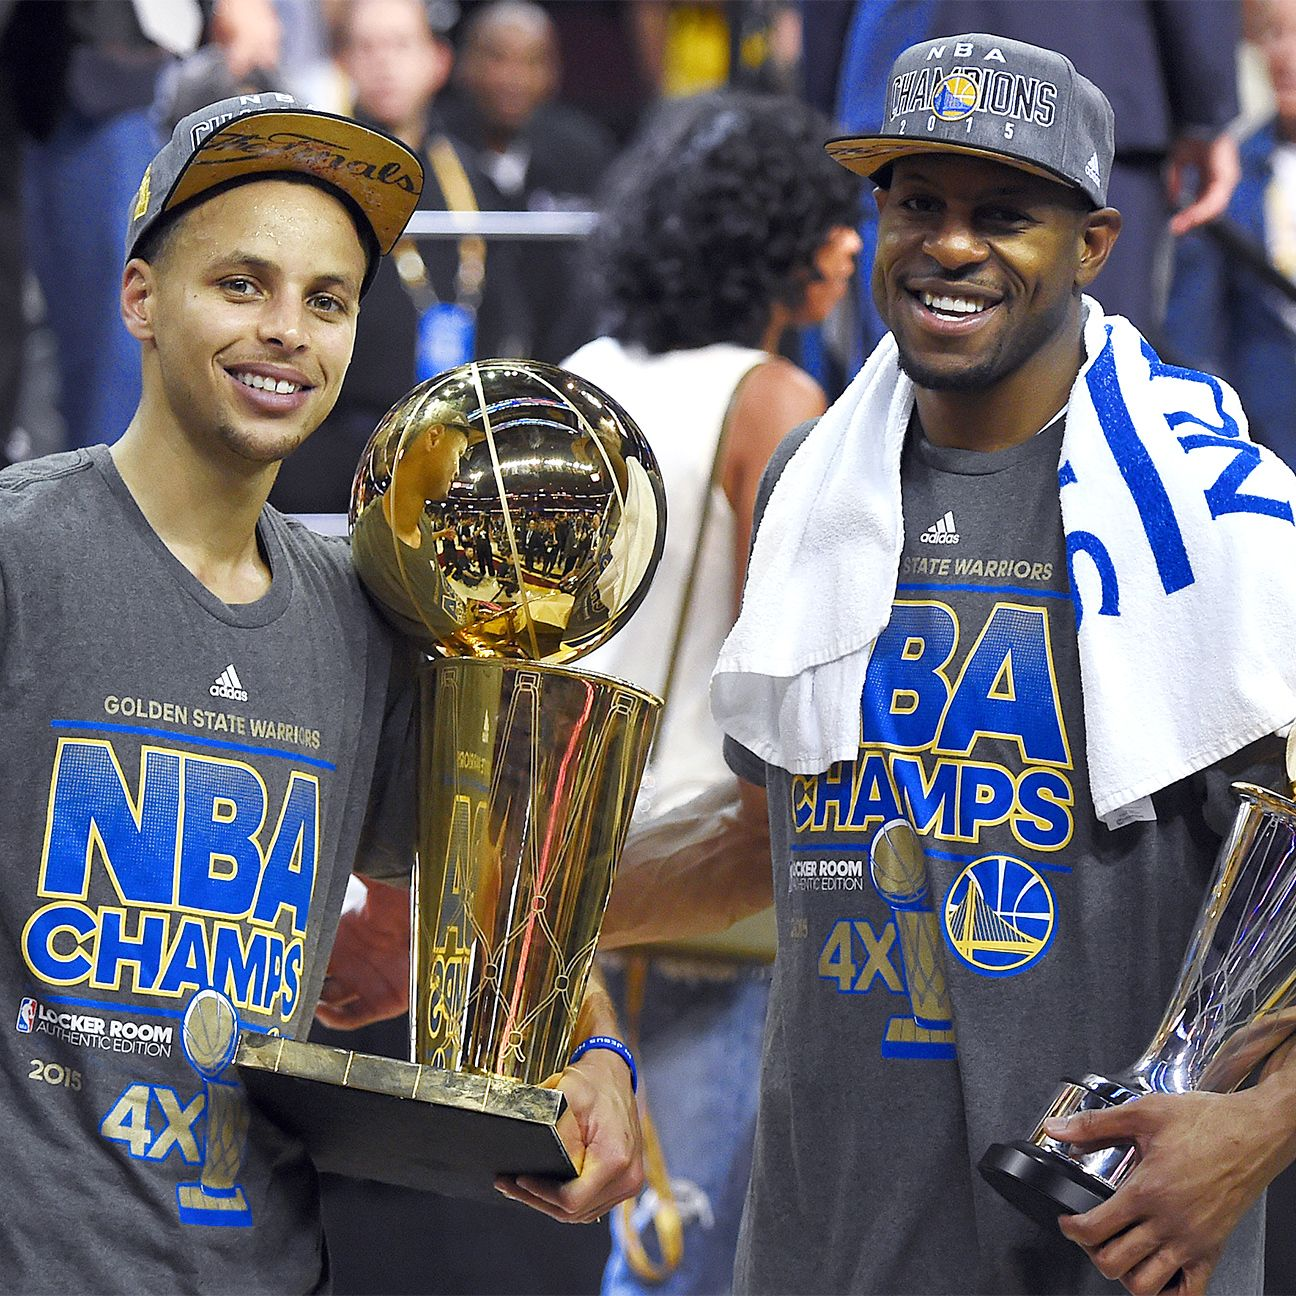 2015 NBA Finals - Champion Golden State Warriors find ways to surprise again